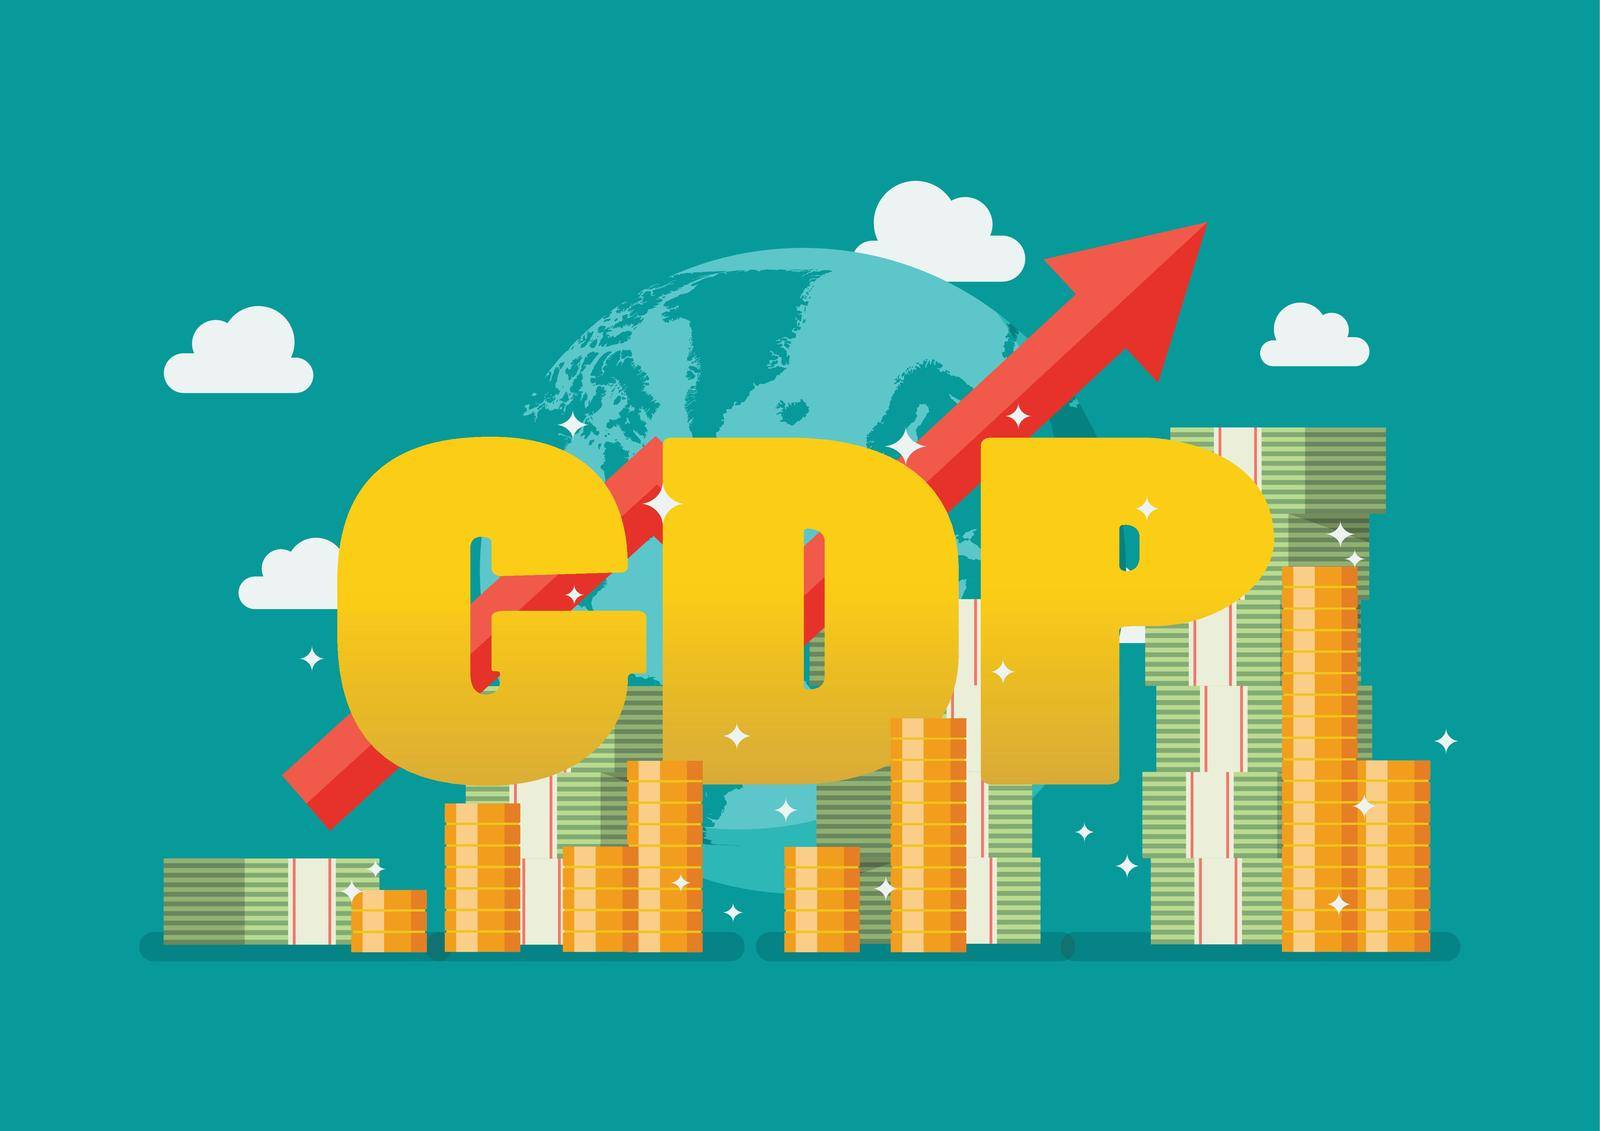 Gross domestic product National earning profit measurement. Economic growth concept. Vector illustration